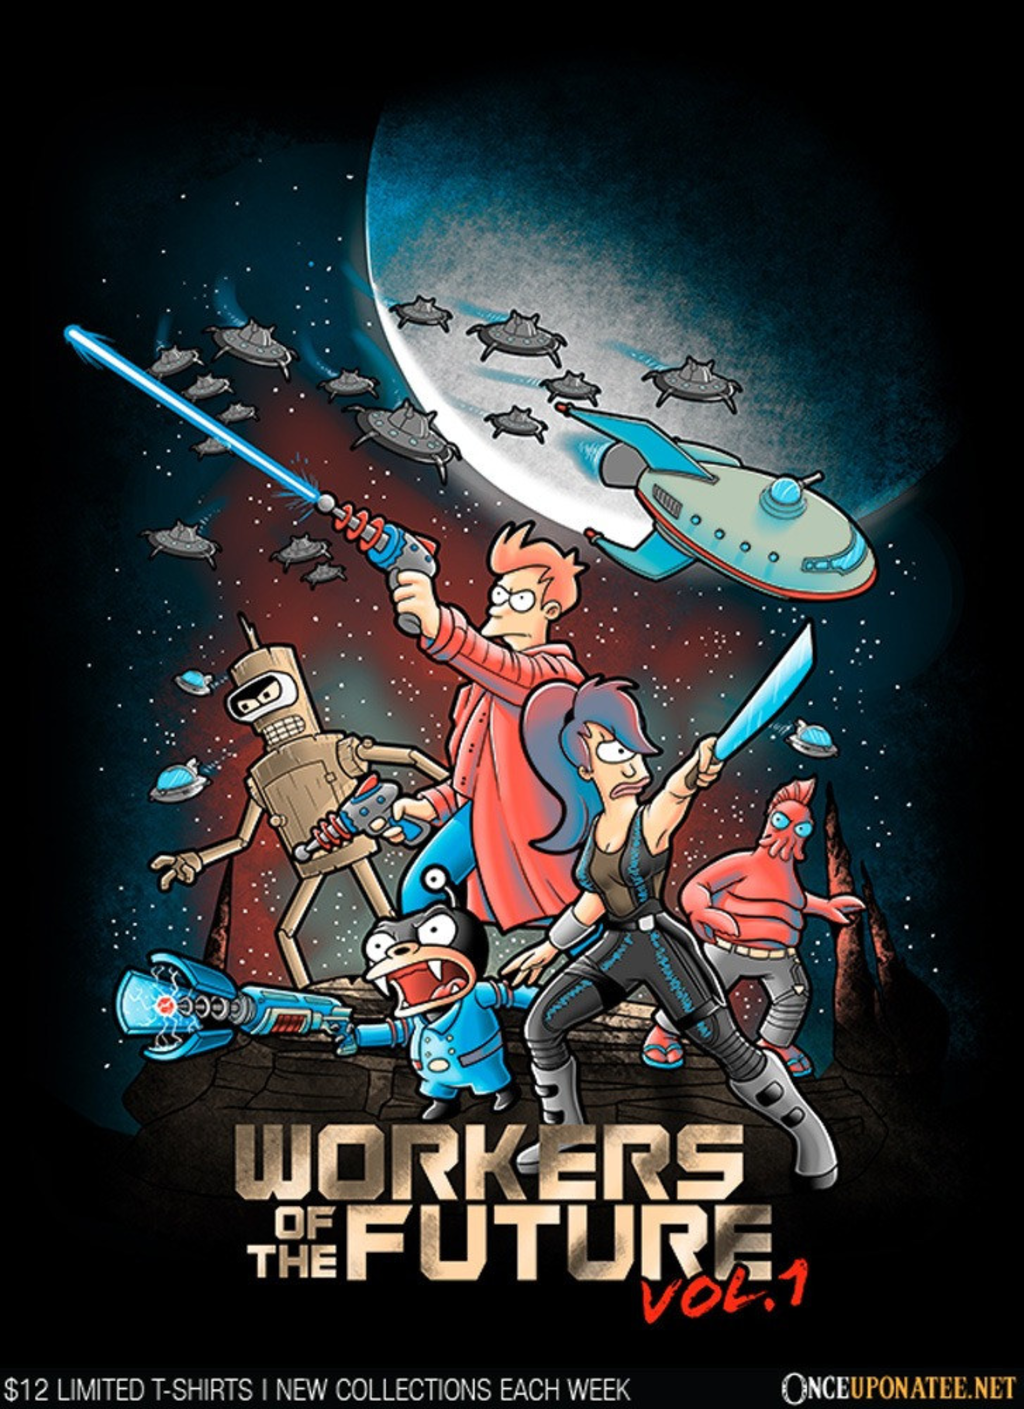 Once Upon a Tee: Workers of the Future: Vol. 1